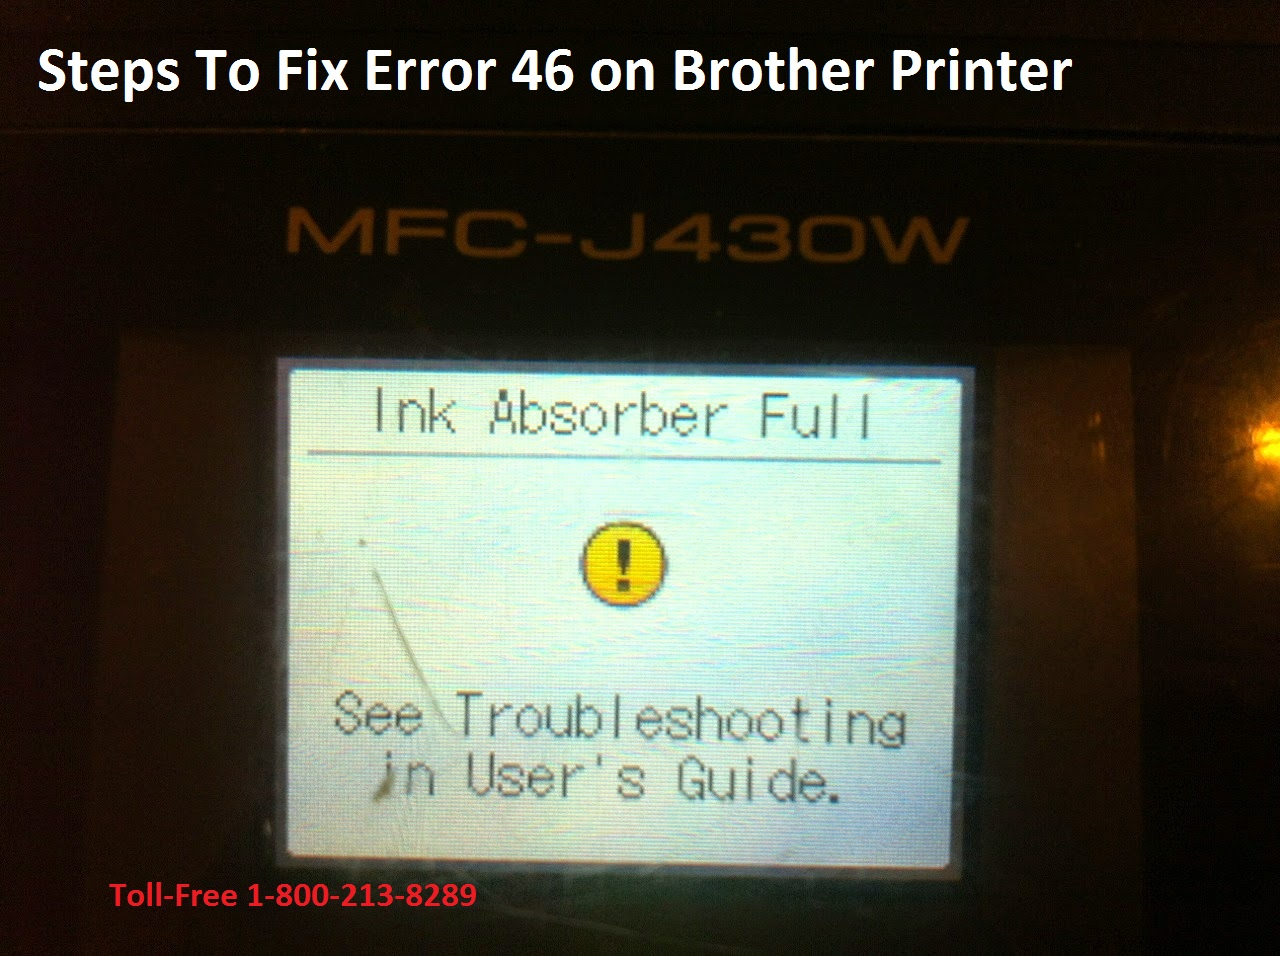 Fix Error 46 on Brother Printer